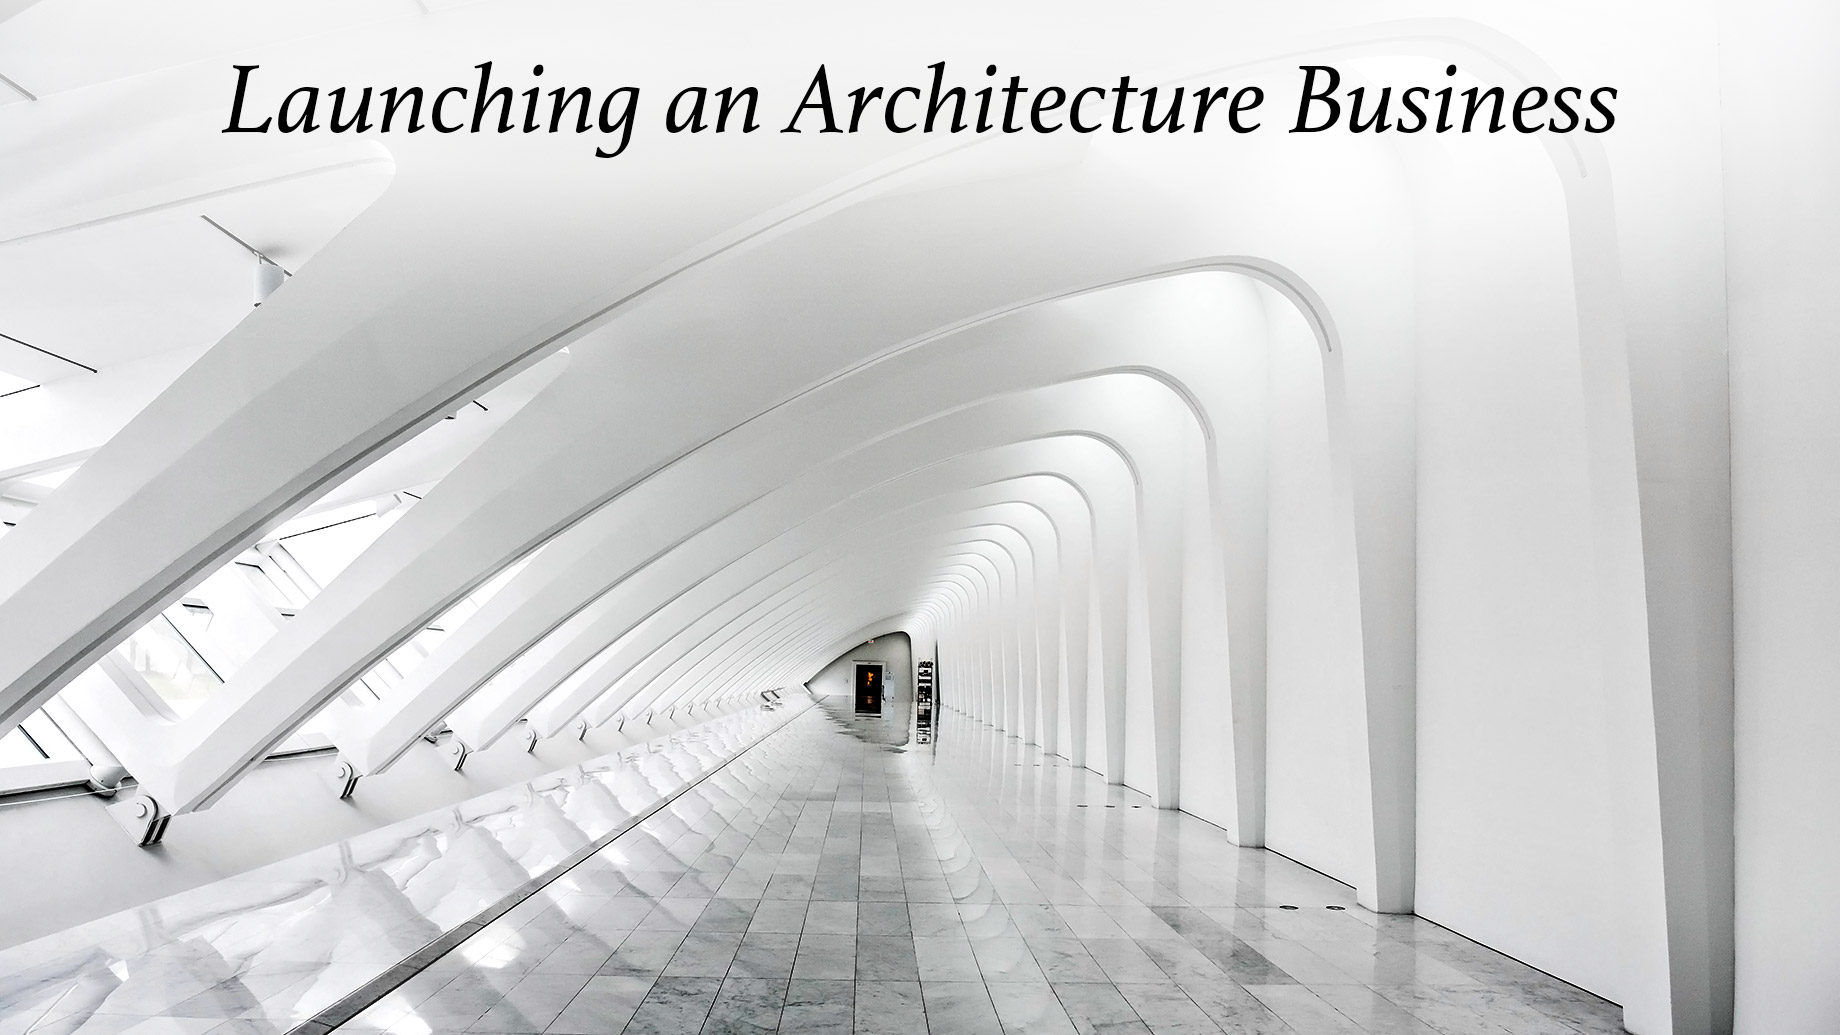 Launching an Architecture Business - Our Top Tips